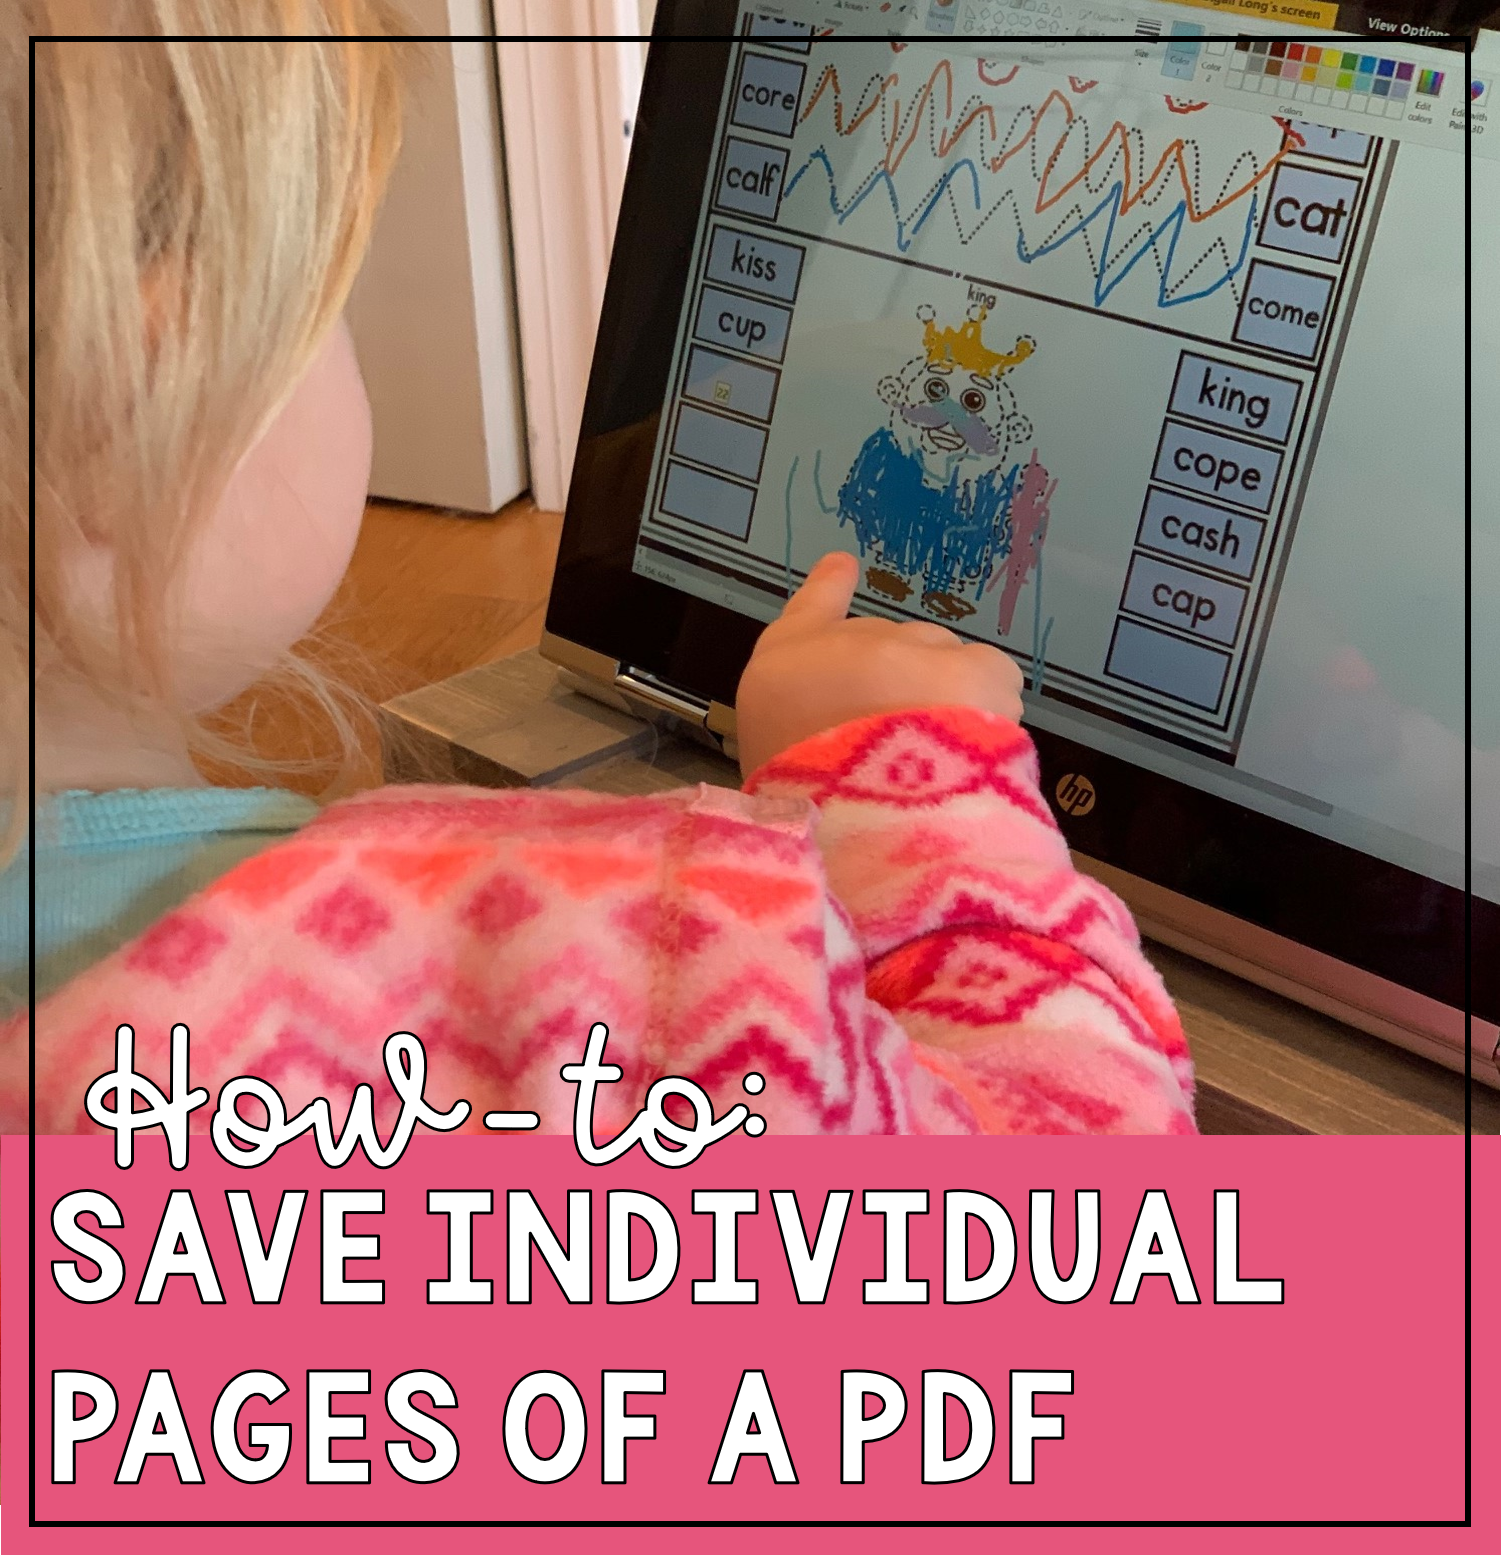 How to Save Individual Pages of a PDF